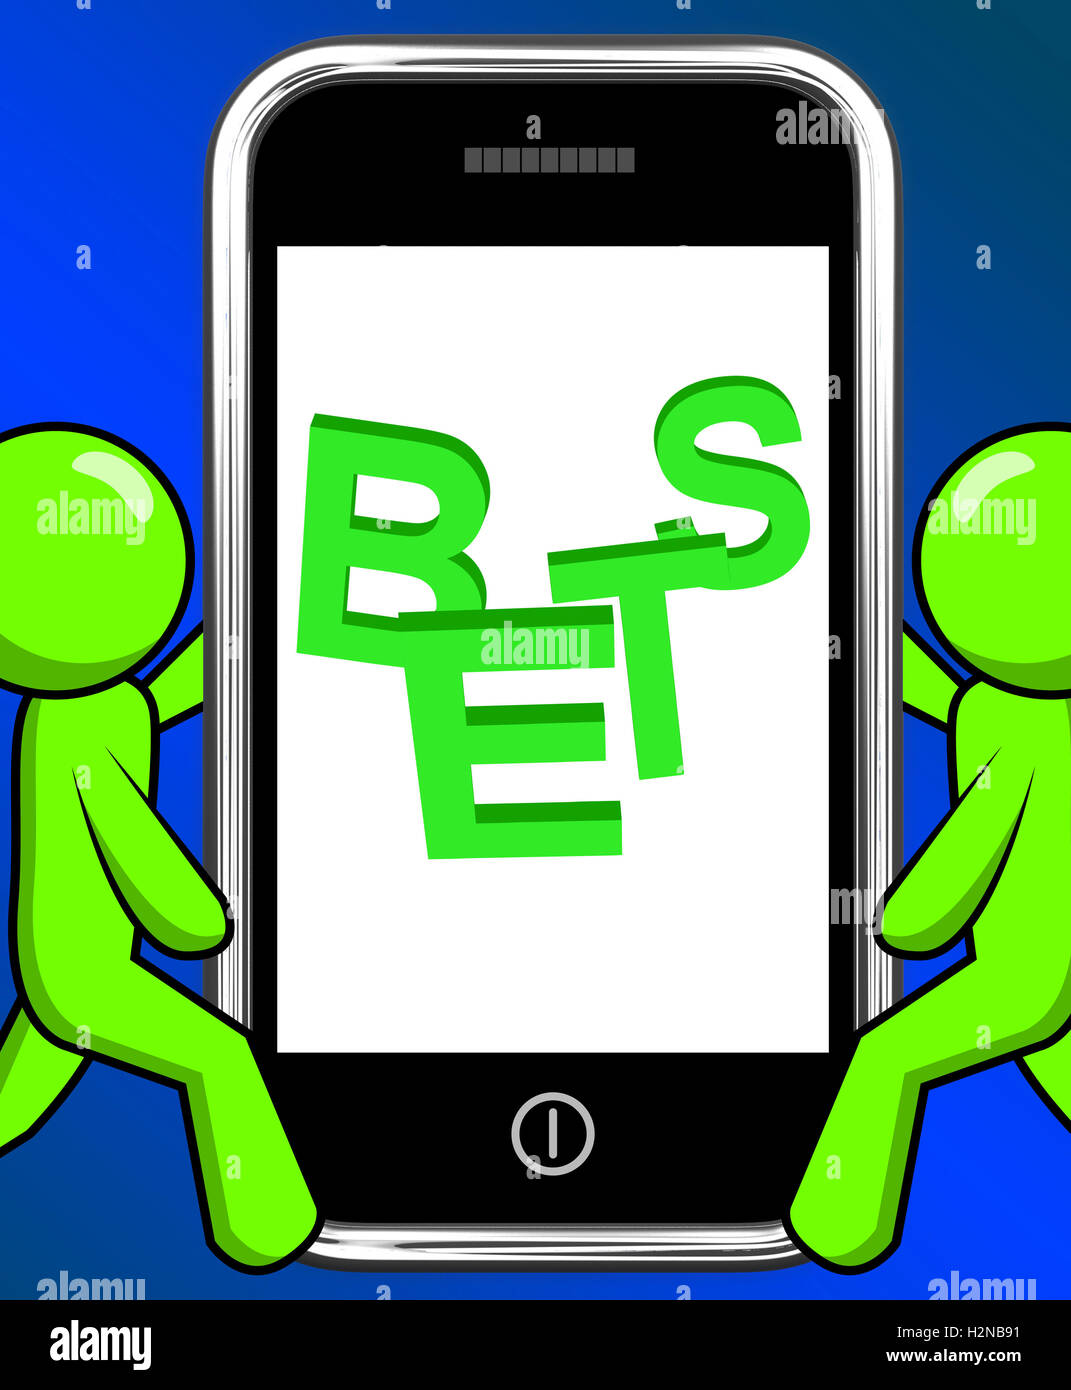 Bets On Phone Displaying Online Or Internet Gambling - Stock Image